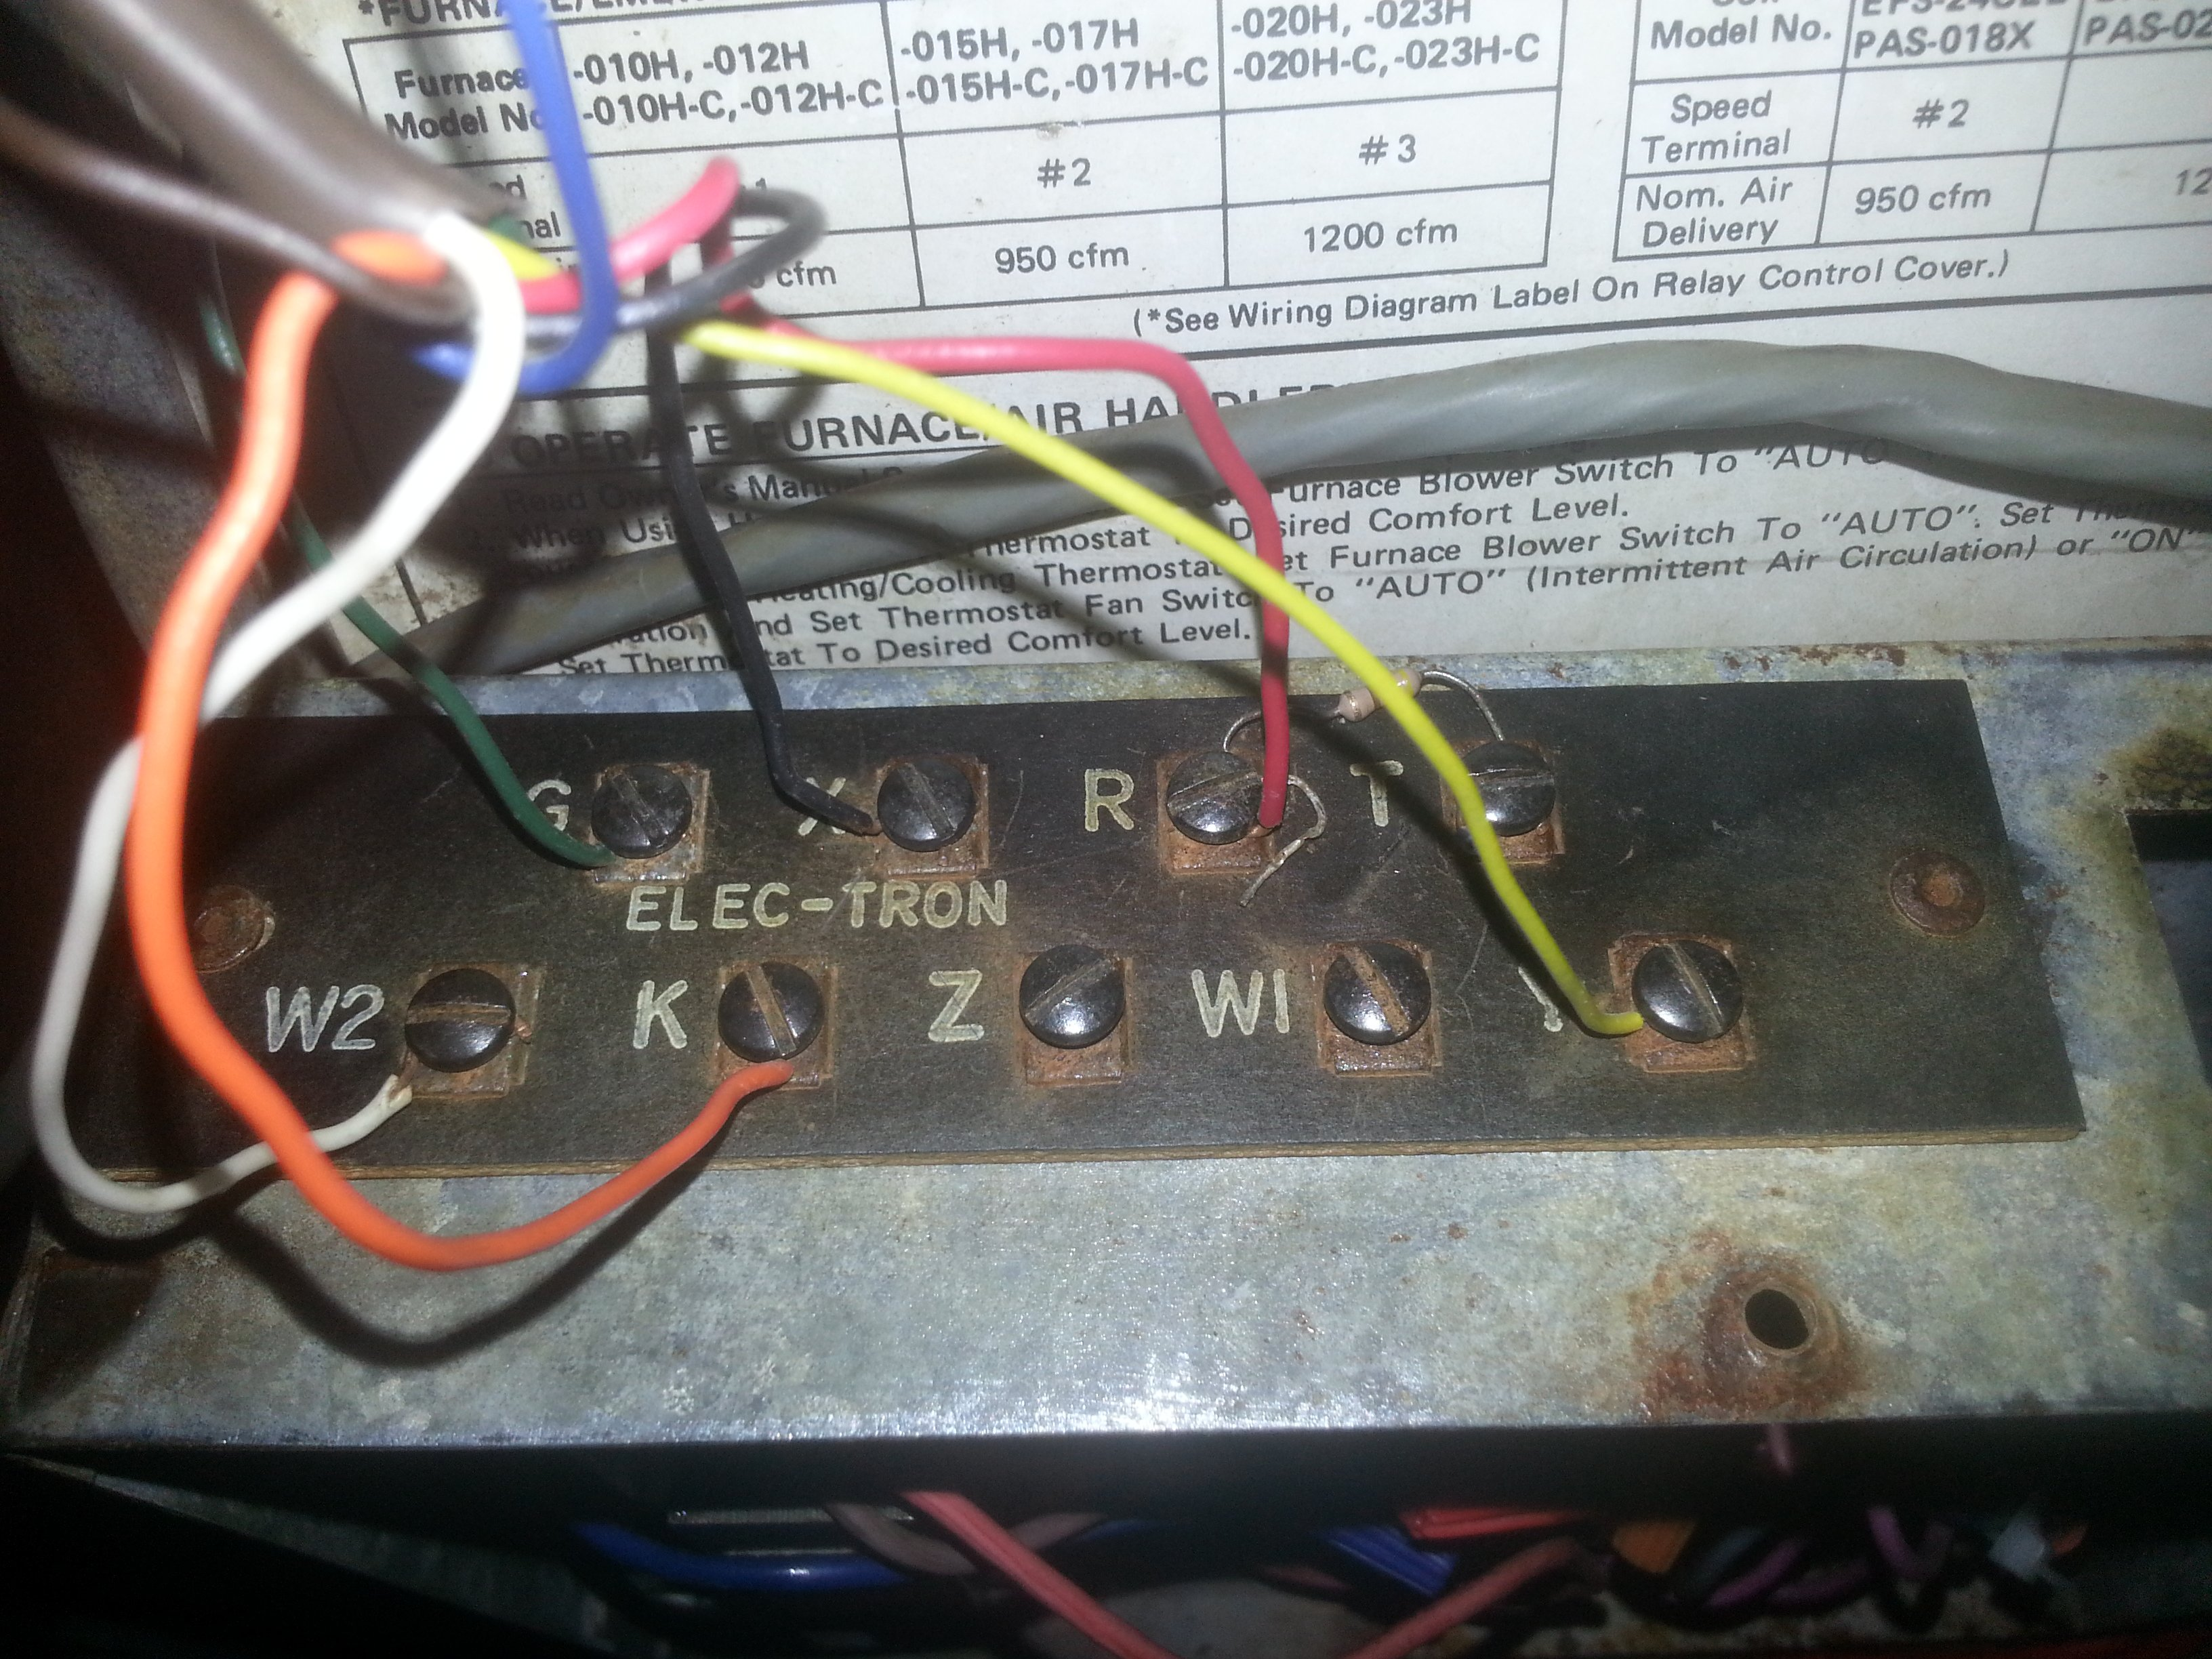 Got an old Intertherm Heat Pump - trying to wire up a new Honeywell ...